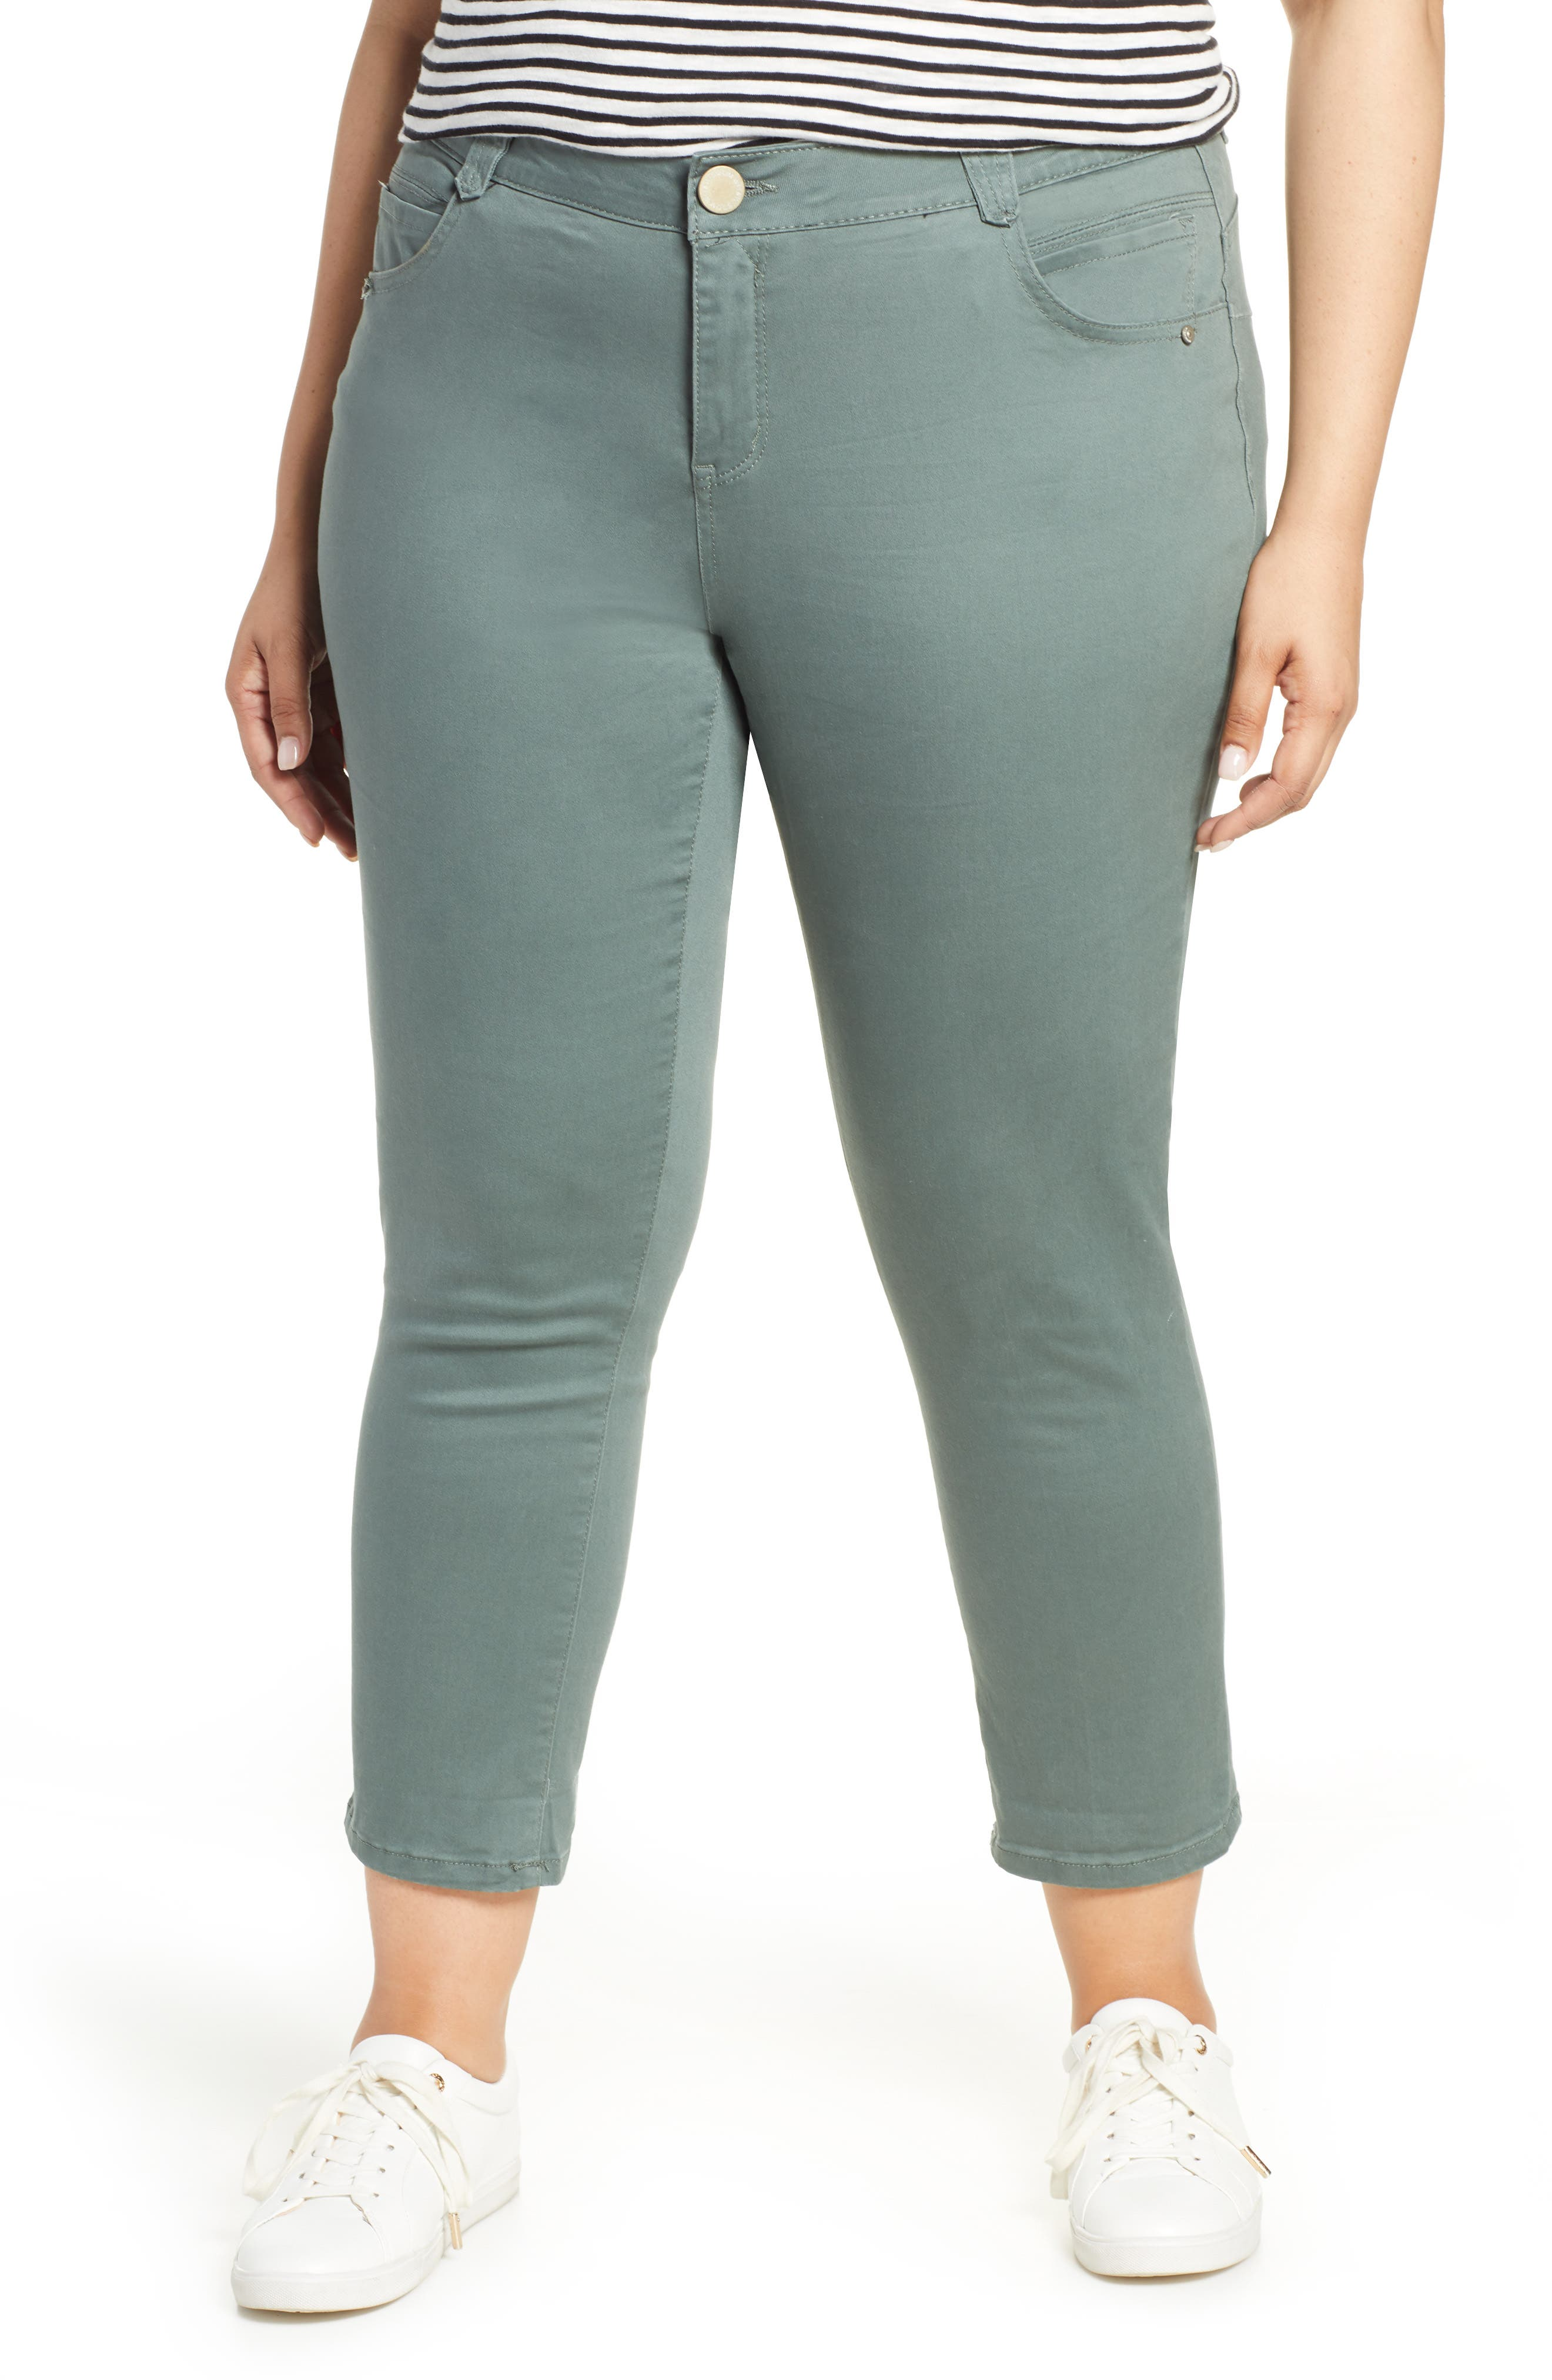 Plus Women's Wit & Wisdom Ab-Solution Ankle Skimmer Jeans